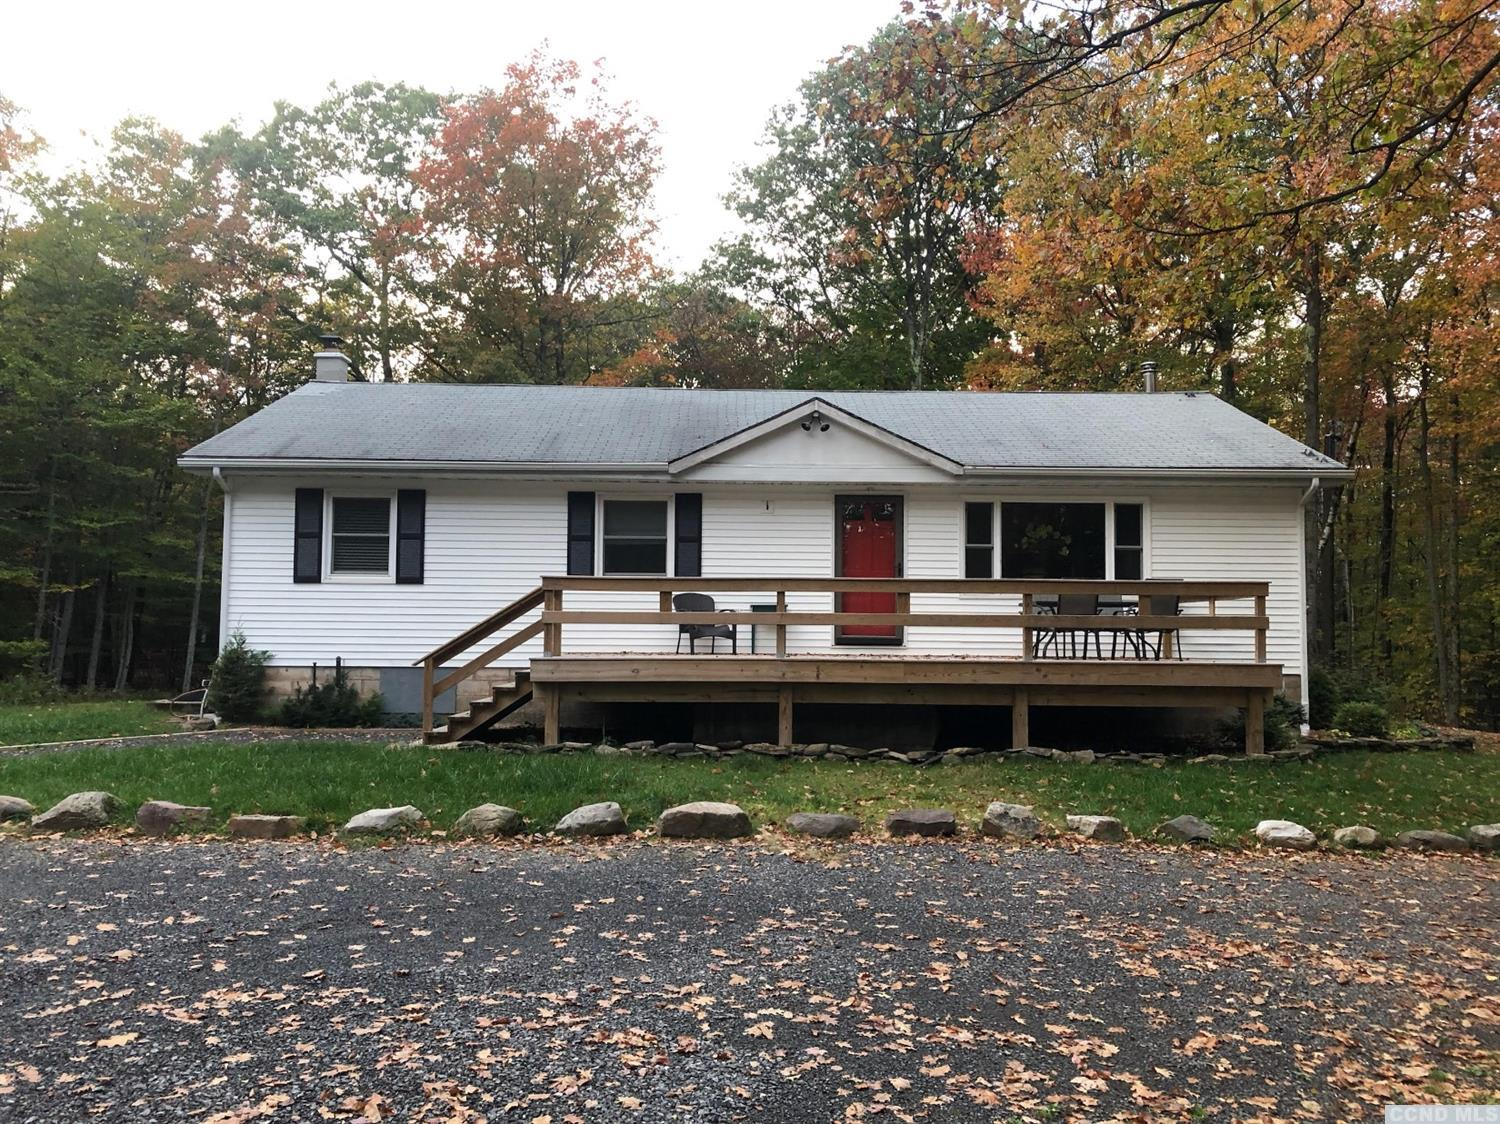 Nicely updated ranch tucked away on 5 private acres. Appliances, furnace, oil tank, hot water heater and septic system are all new as of 2012.New chimney and footing for 2nd chimney. Basement has been dry locked. New insulation in attic. Large 2 car 2 story garage with heat and electric. Albany 45 min., Ski Windham 30 min. 5 min to Huyck Preserve, great place to hike, bird watch, kayak and swim.